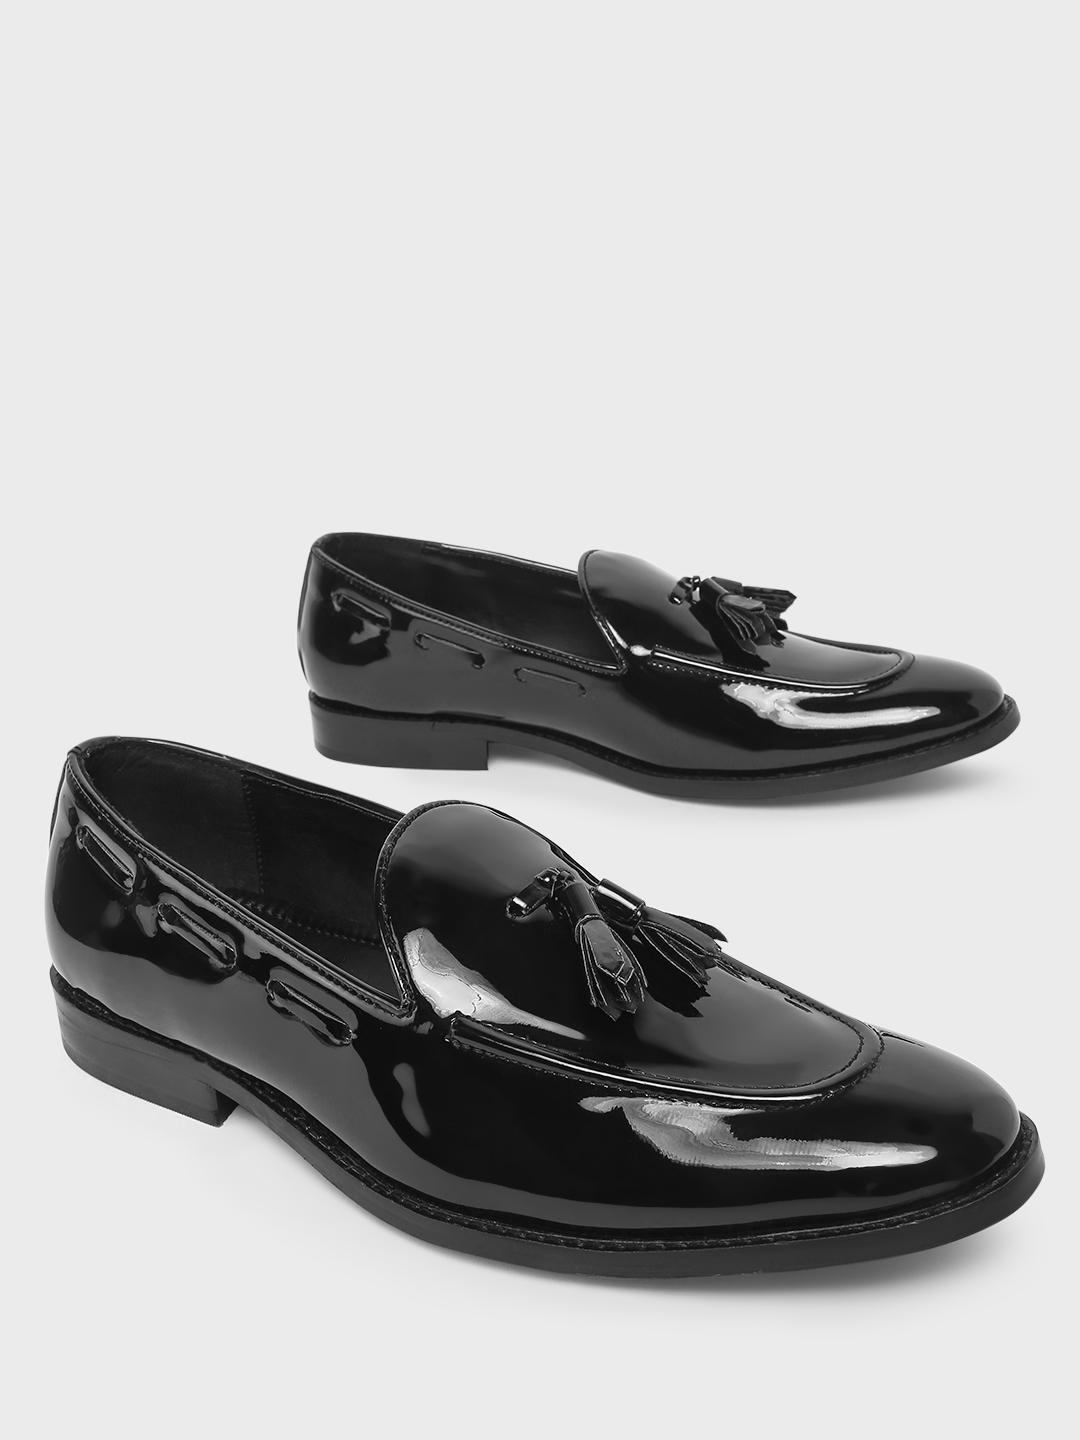 Griffin Black Patent Tassel Trim Boat Loafers 1